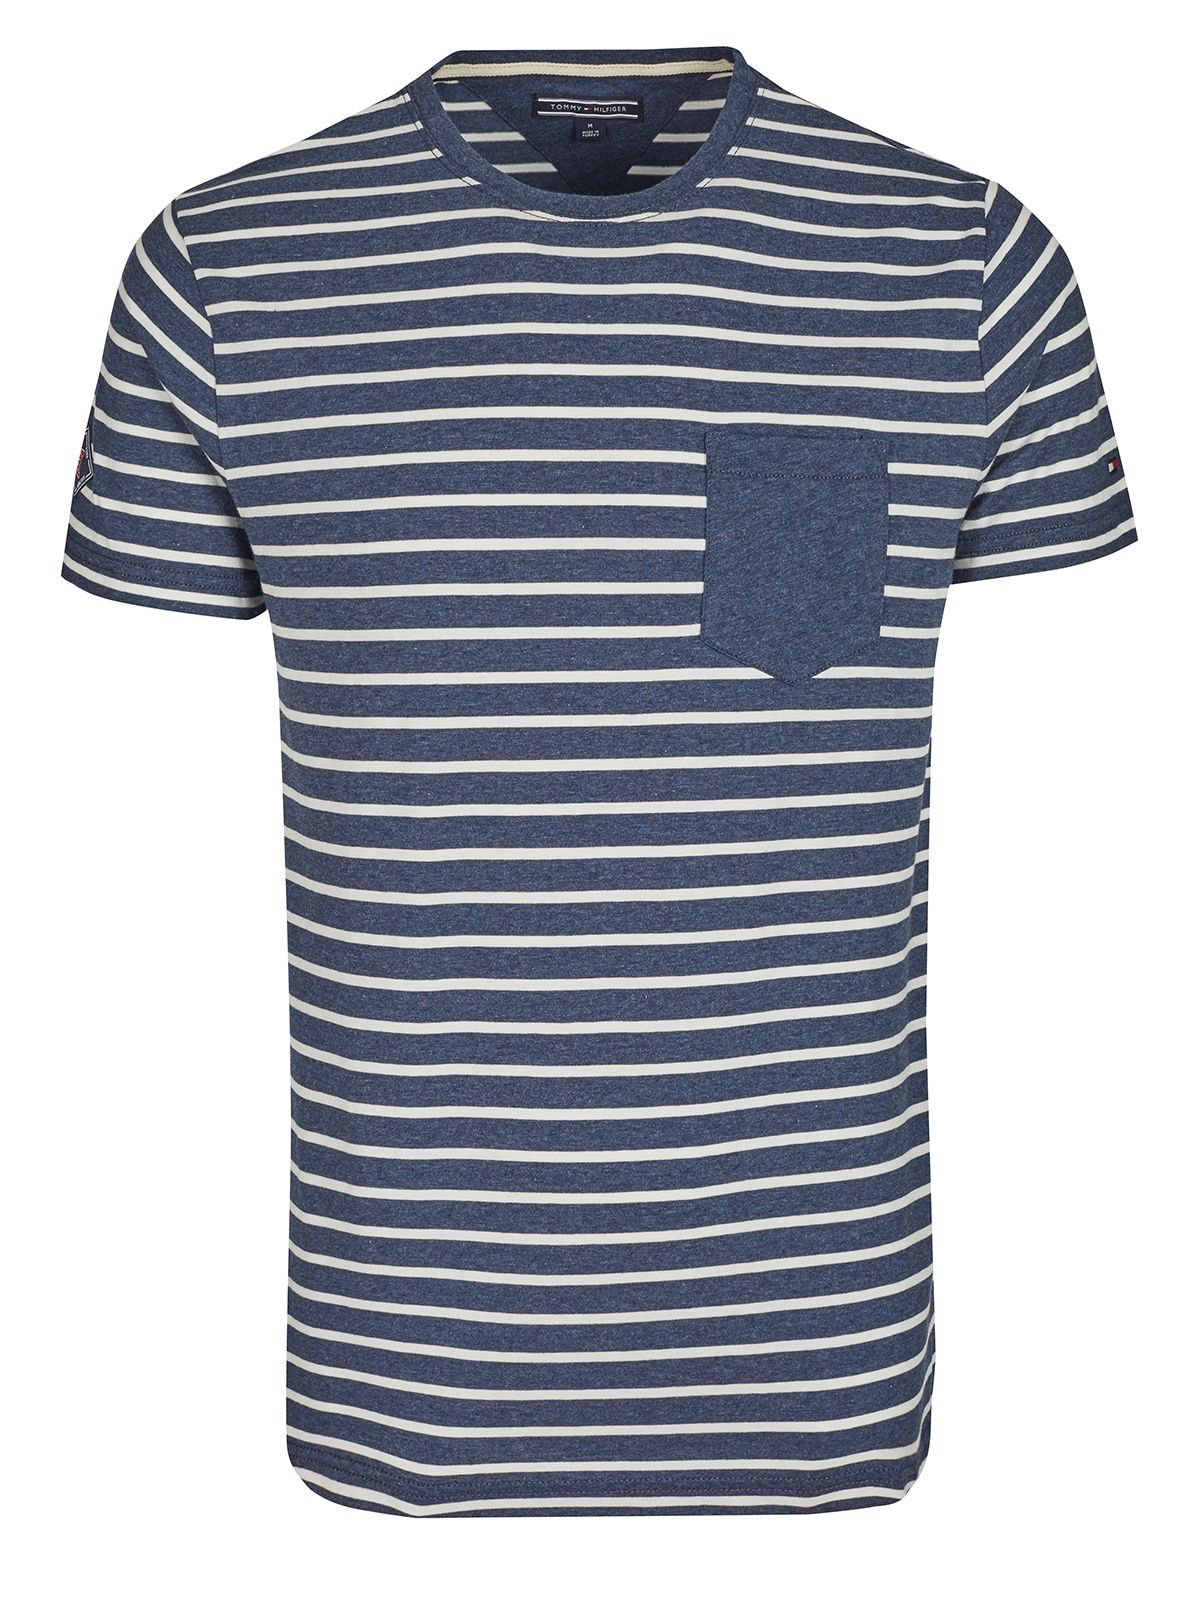 ea2a2b514a6f Tommy Hilfiger T-Shirt striped / designer online shop | Men's ...